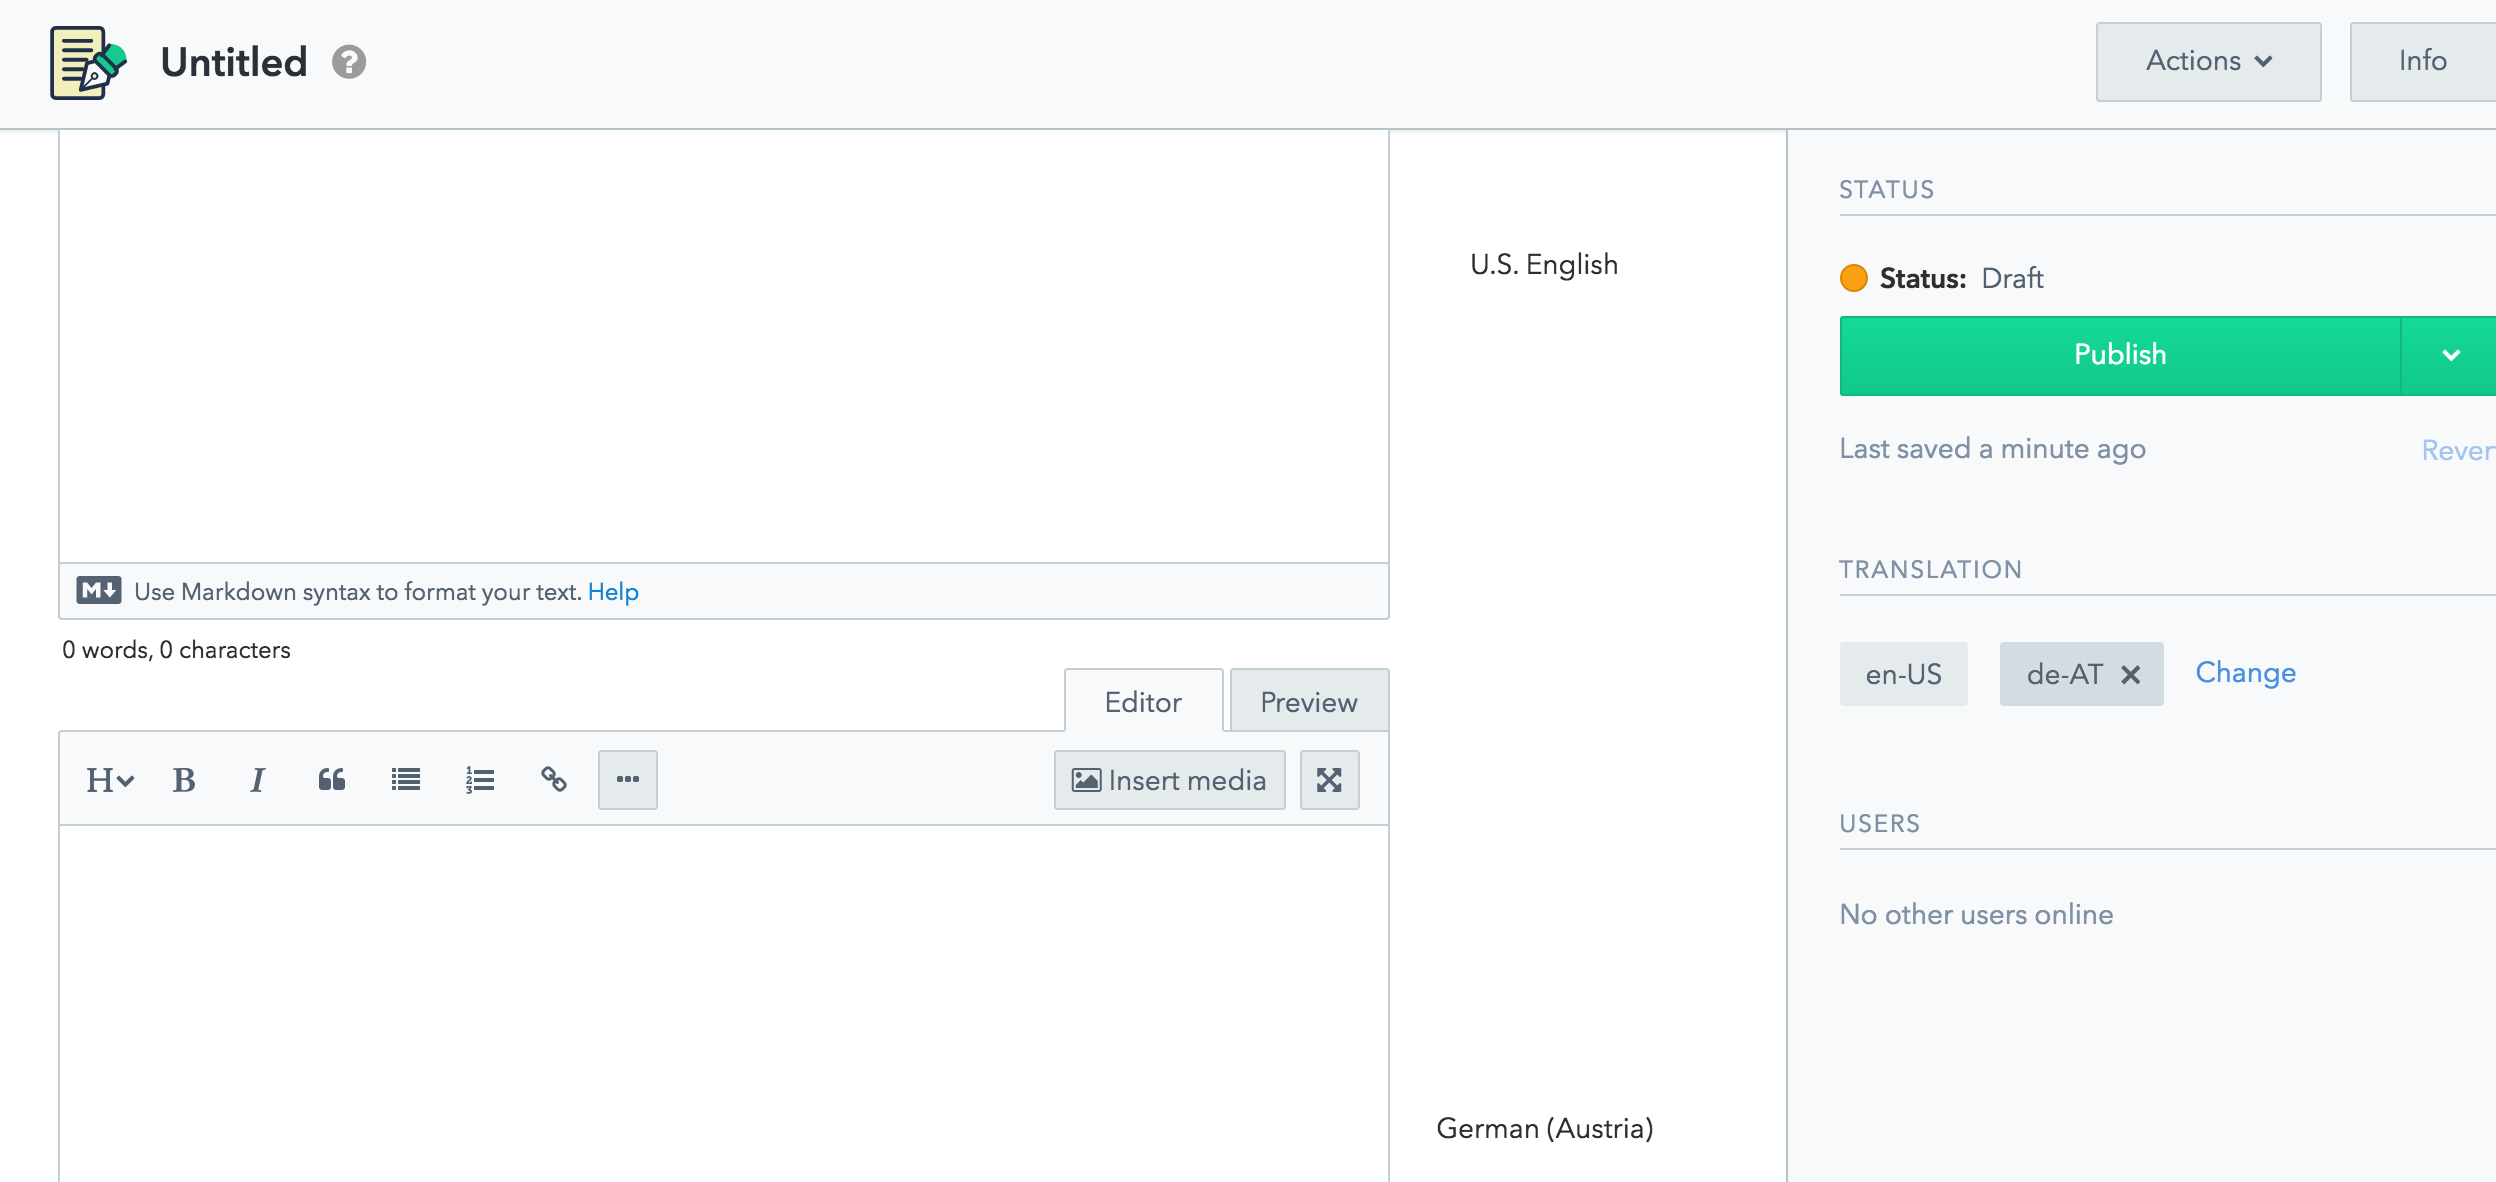 A field in the web app with a value for a particular translation